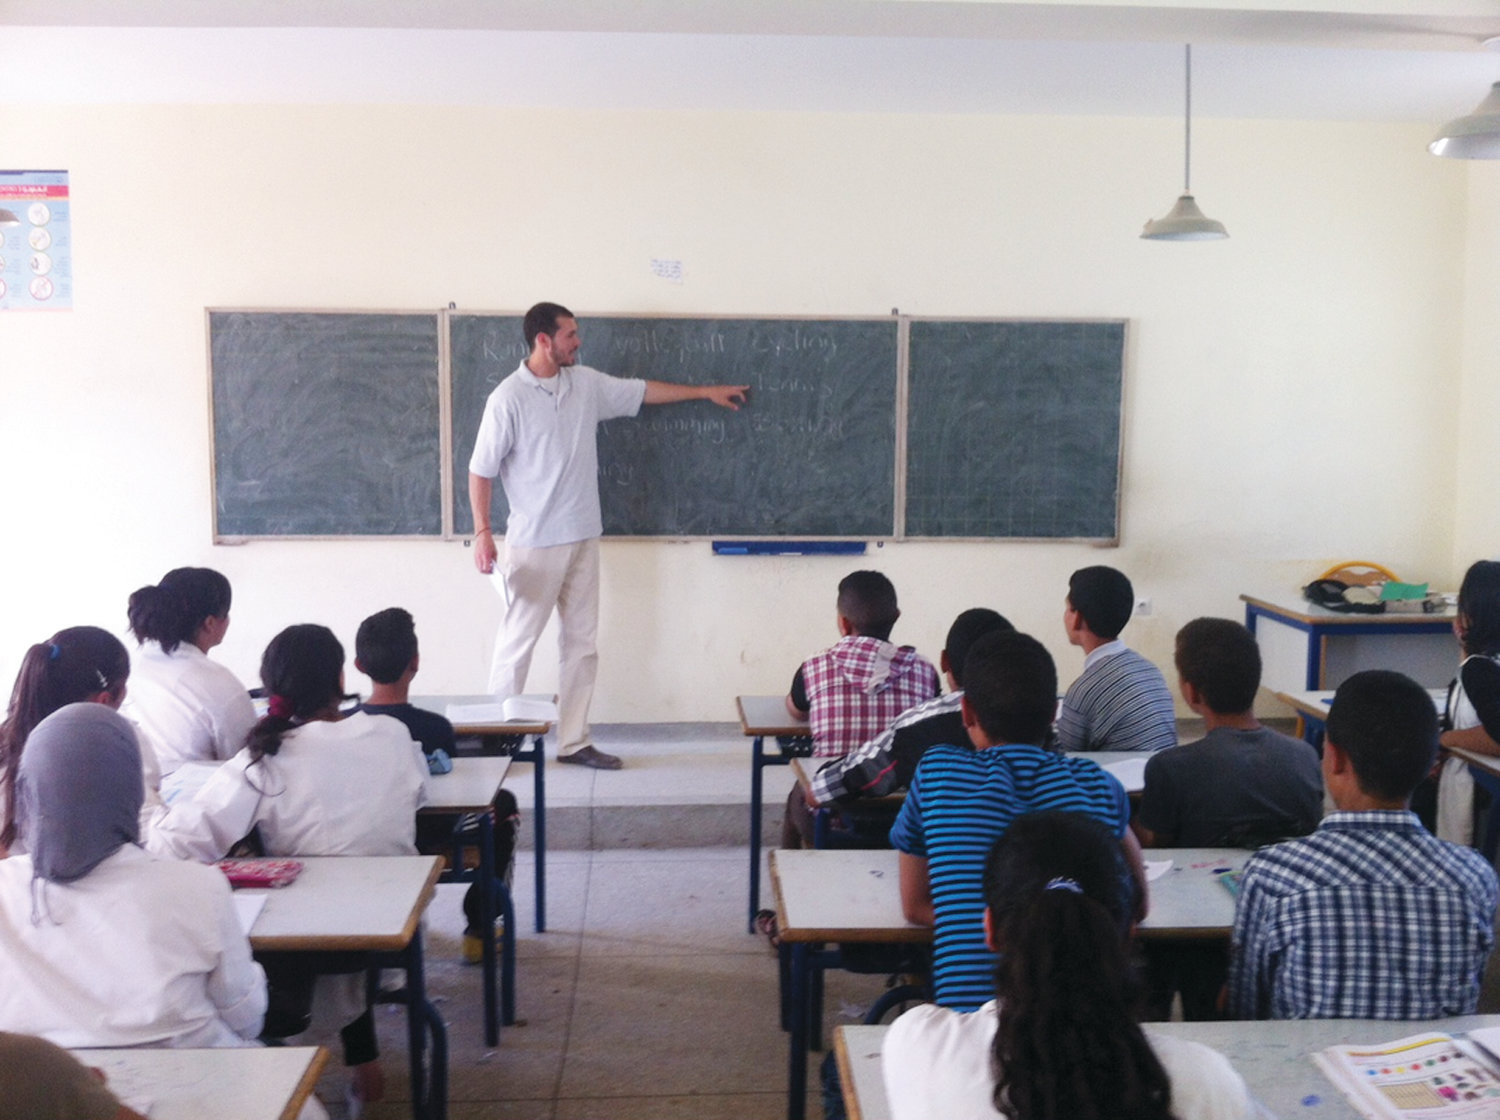 Justin Bibee leads a classroom during his time as a Peace Corps volunteer in Morocco.